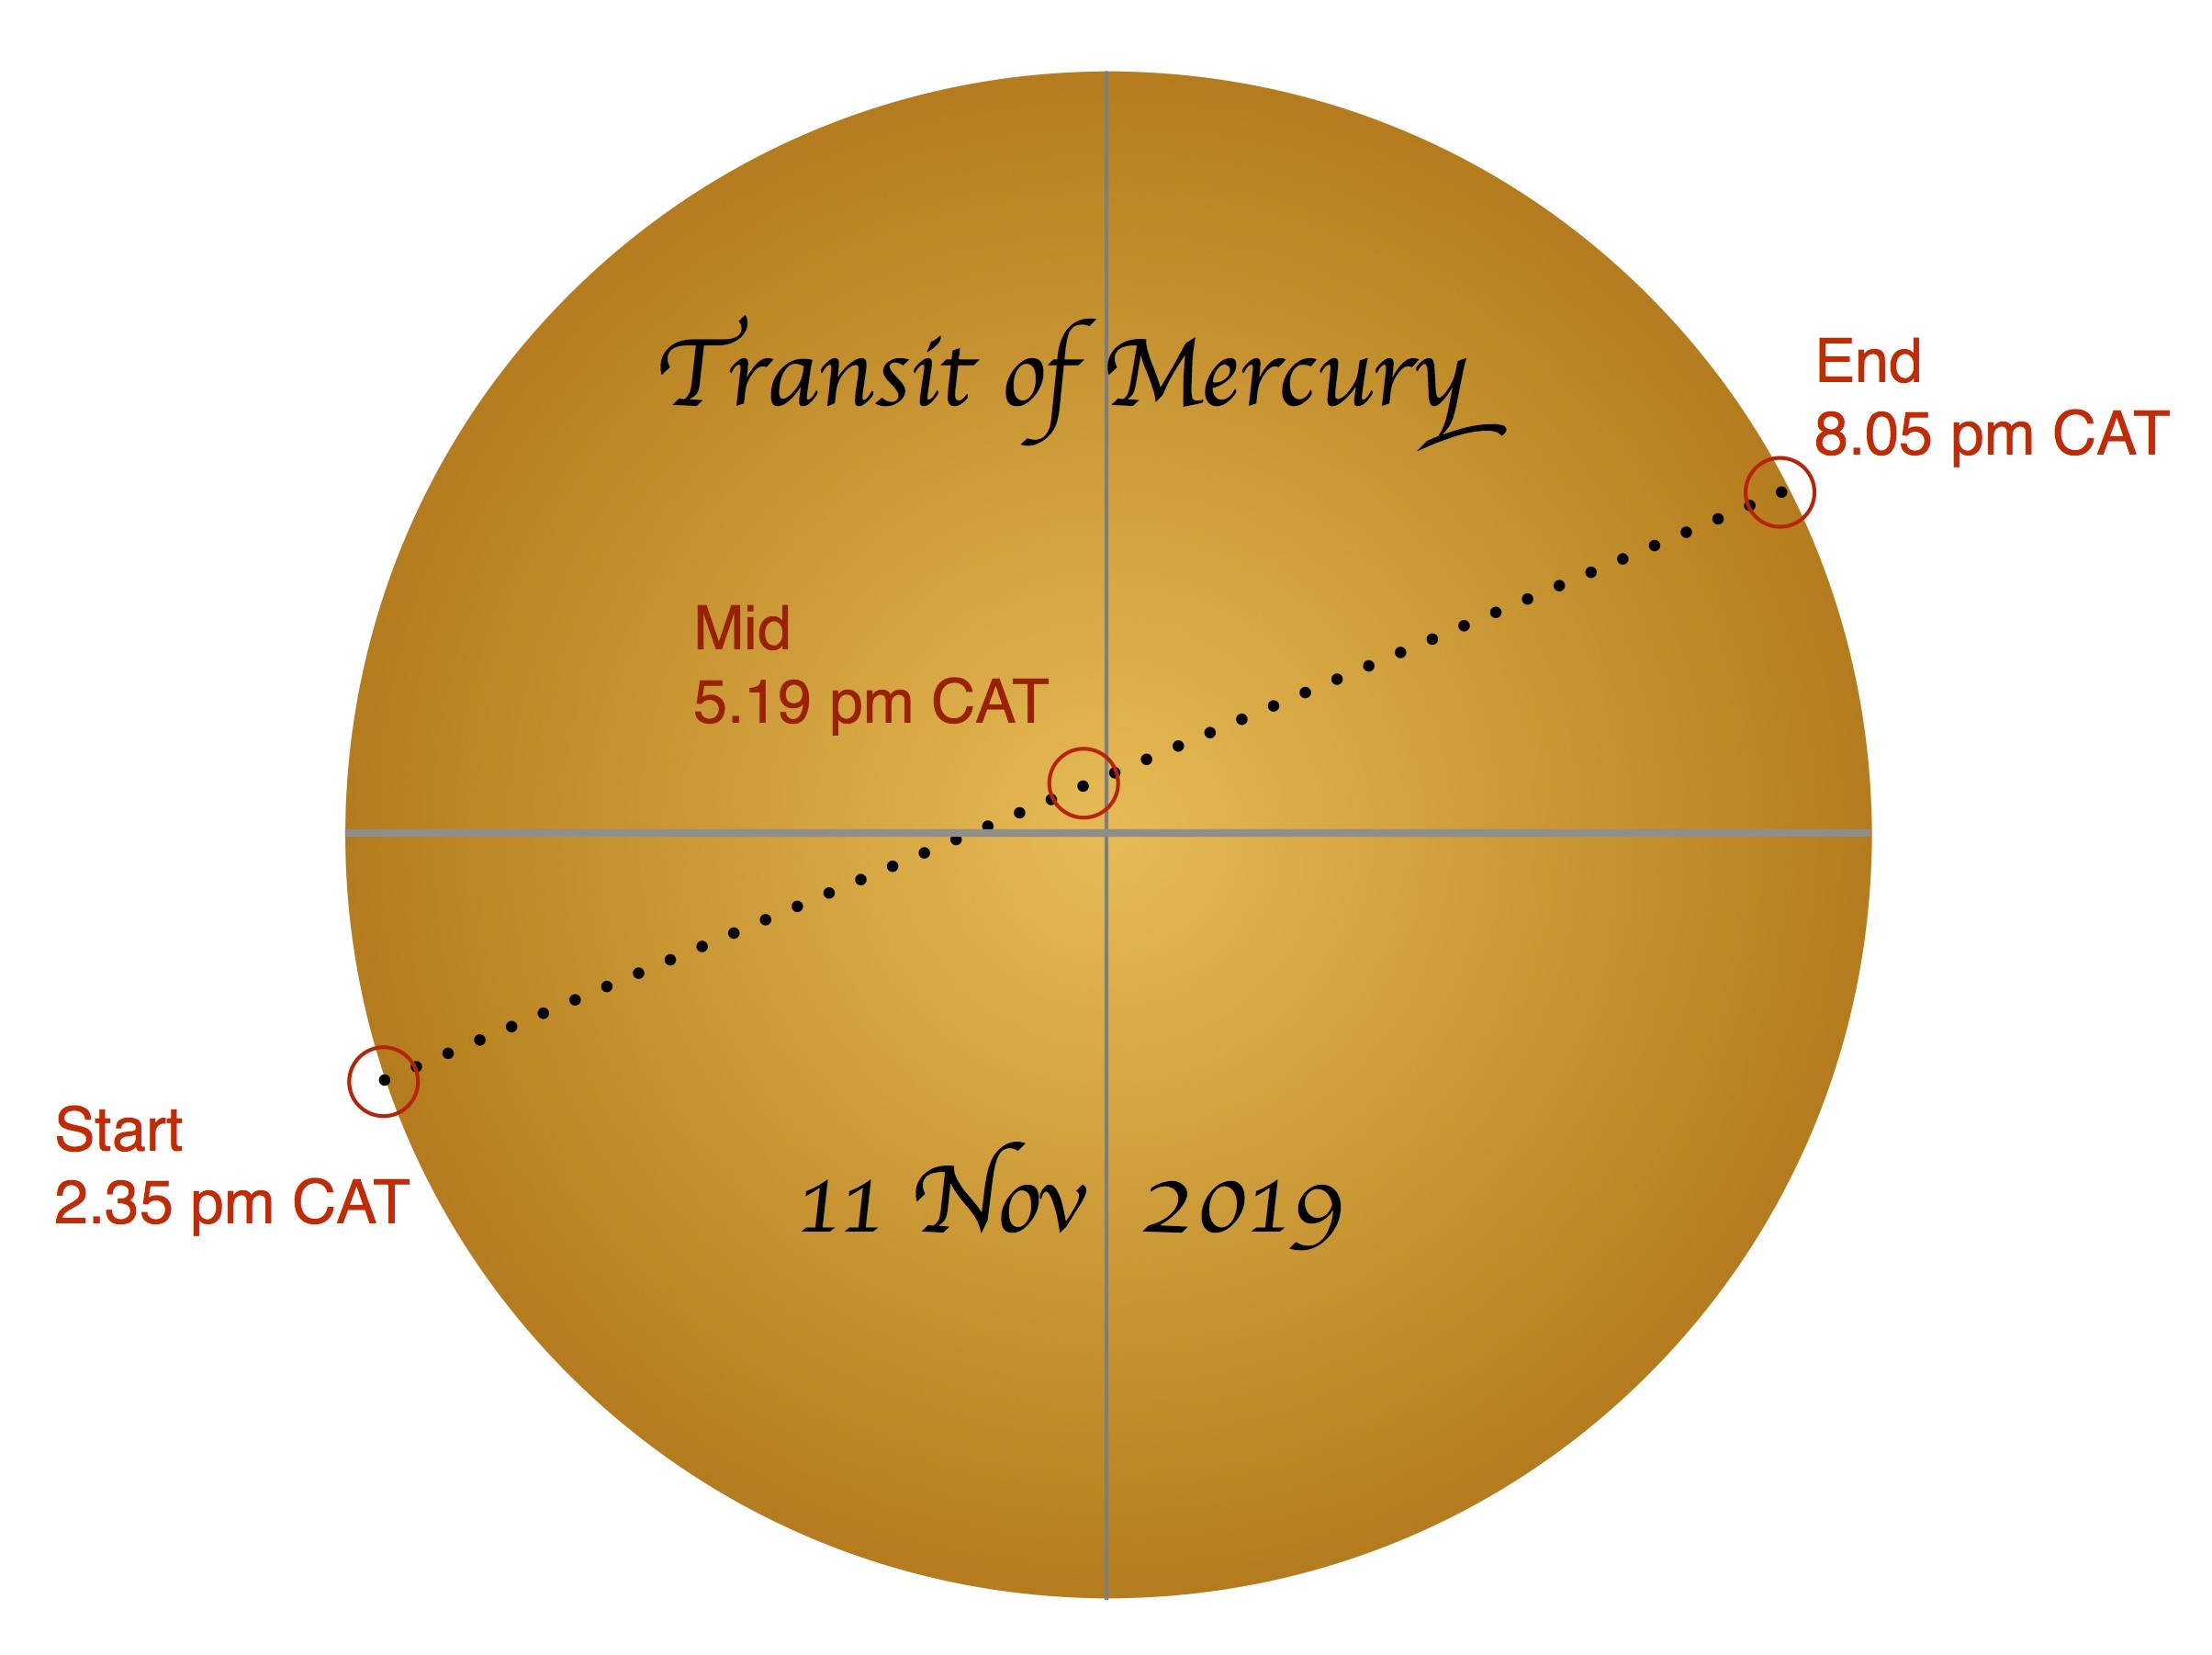 Path of Mercury across the solar disk on 11 November 2019